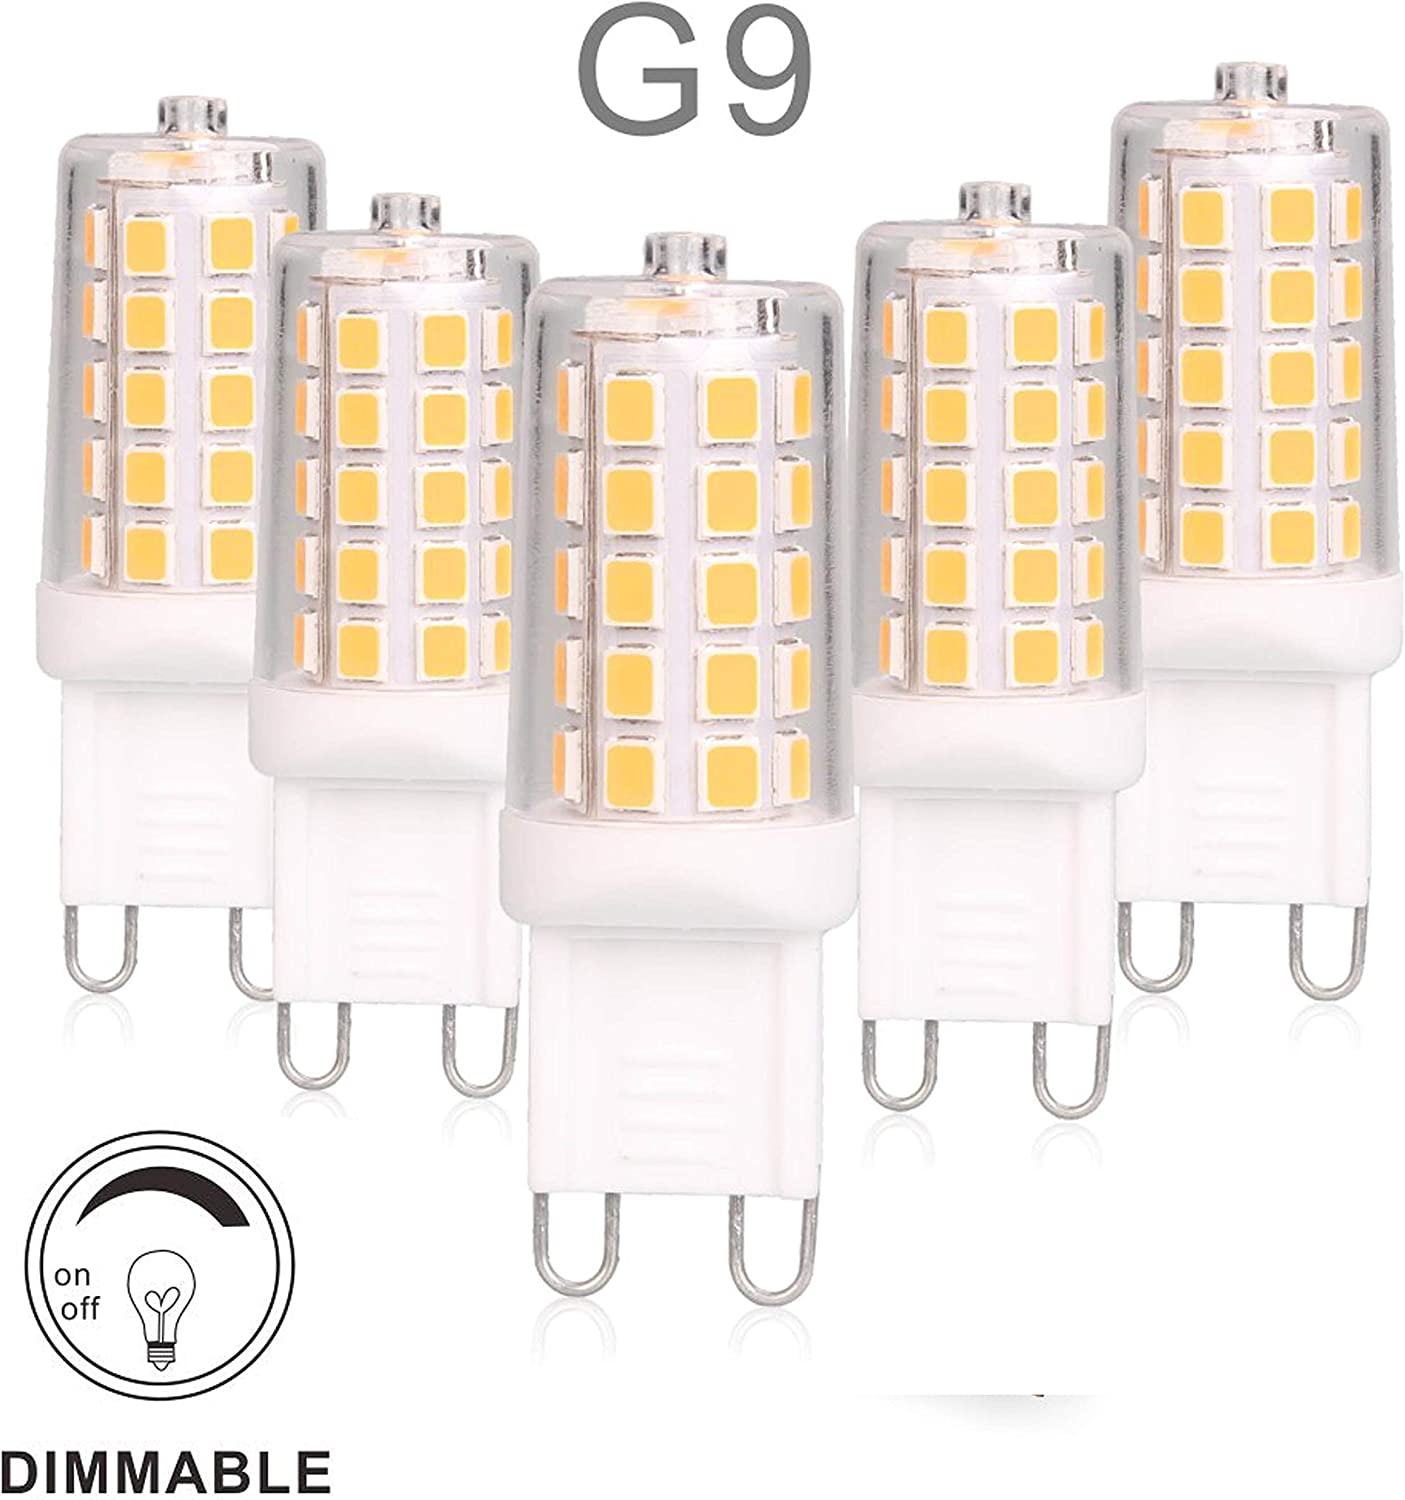 G9 LED Bulb Dimmable 4W, 40 Watt T4 G9 Halogen Equivalent, 2700K Soft Warm White, 120V No-Flicker, Chandelier Lighting 450LM (5 Pack) by BAOMING